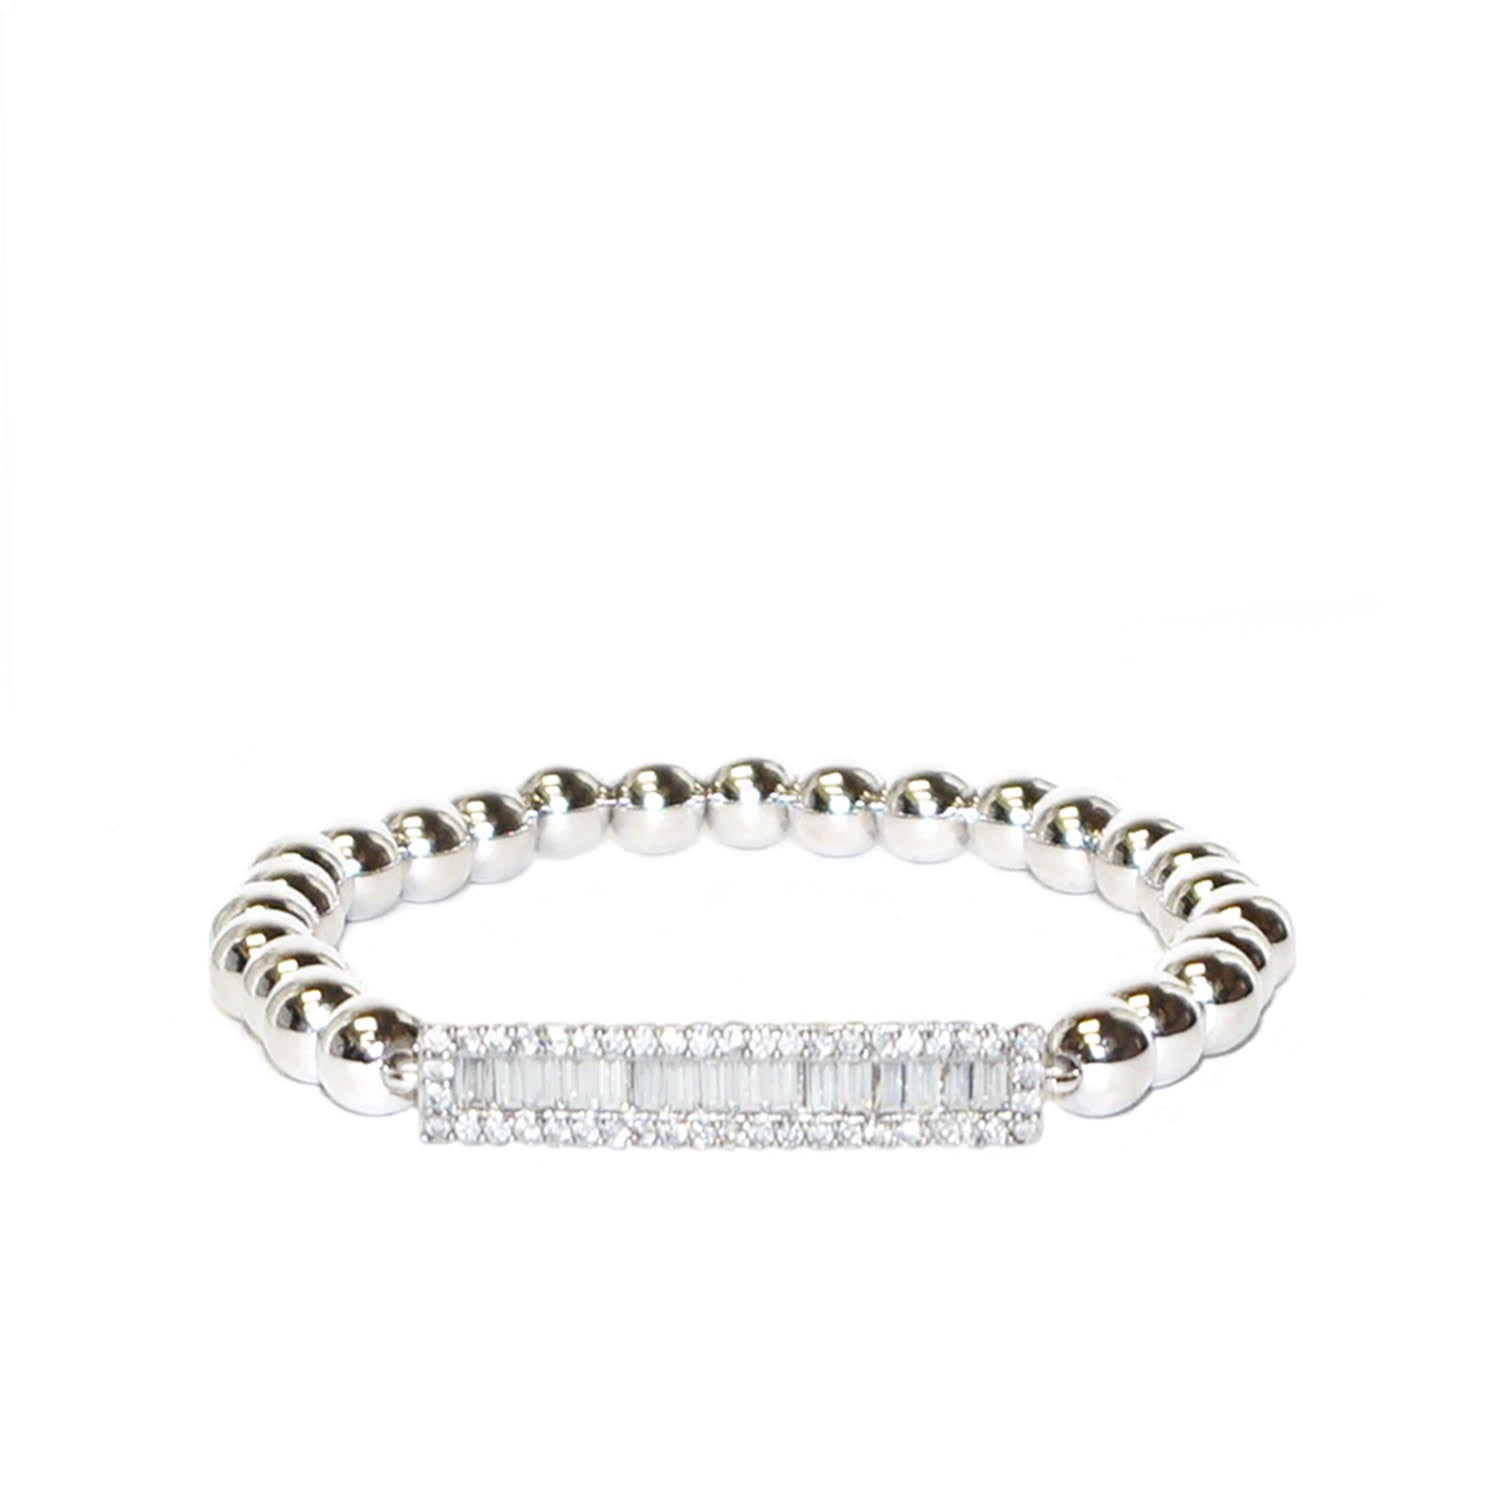 Crystal Bar Stretch Bracelet - Impulse Jewelry and Accessories